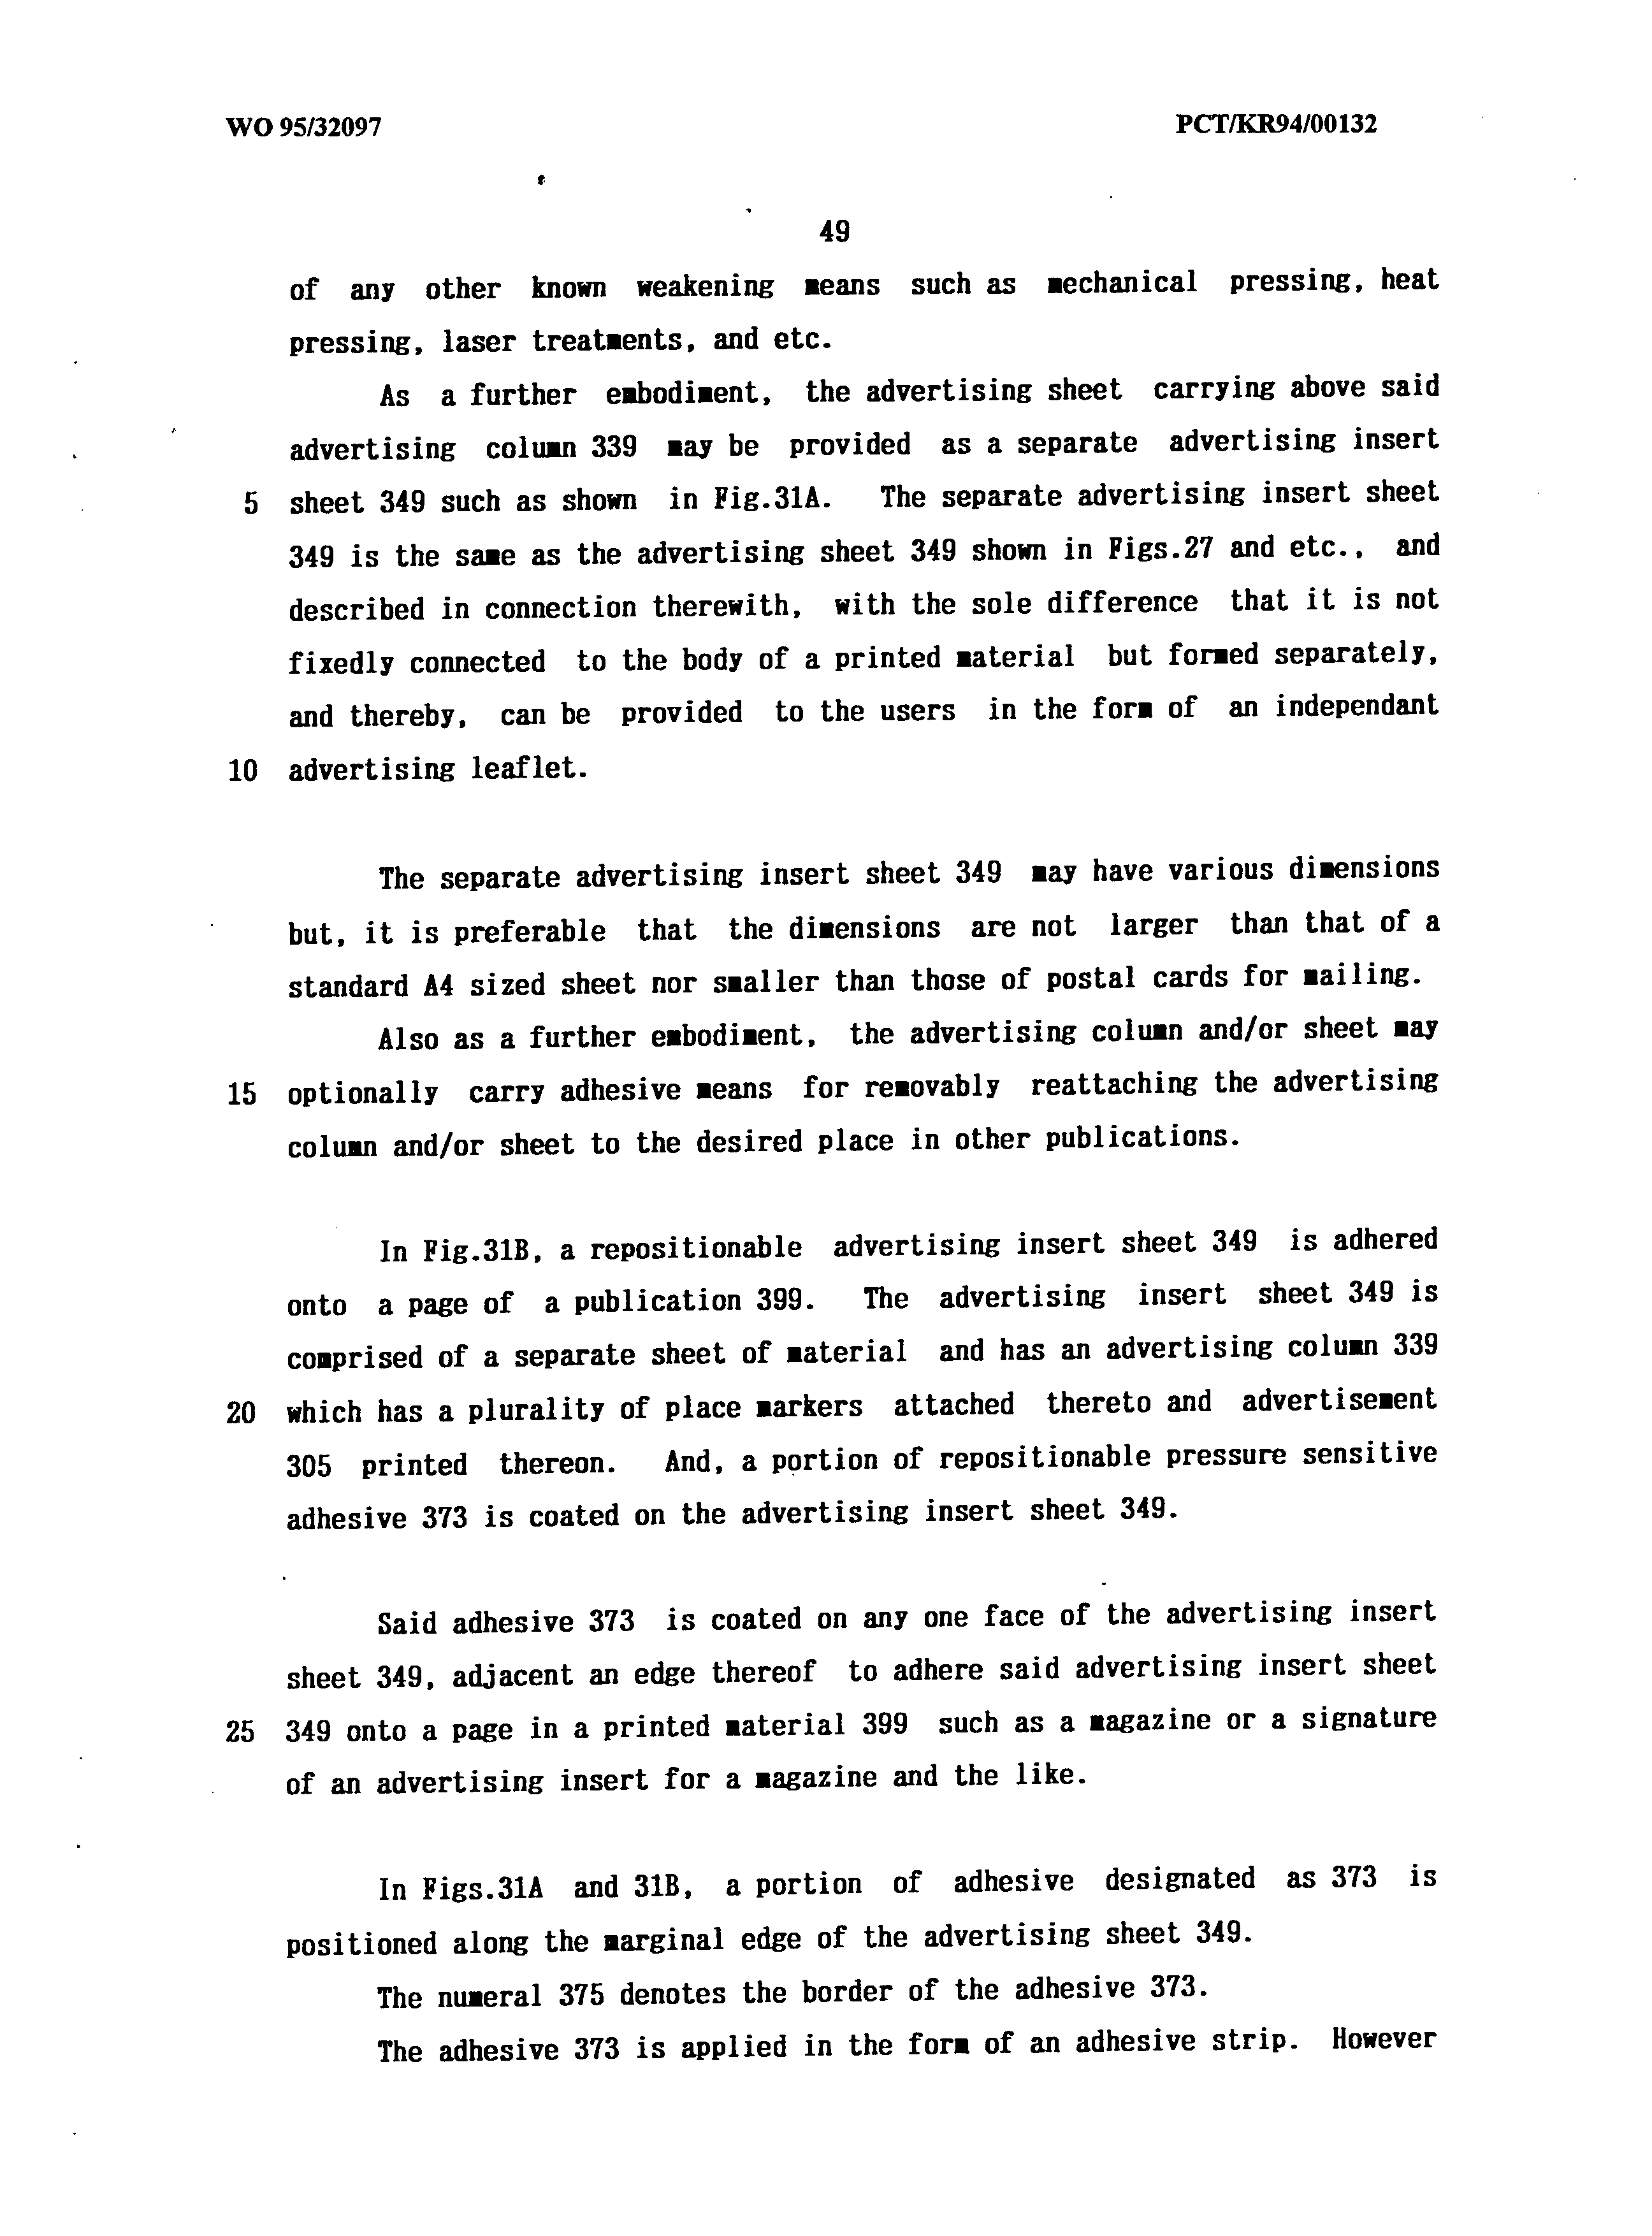 WO 1995/032097 A1 - A Place Marking Means For Printed